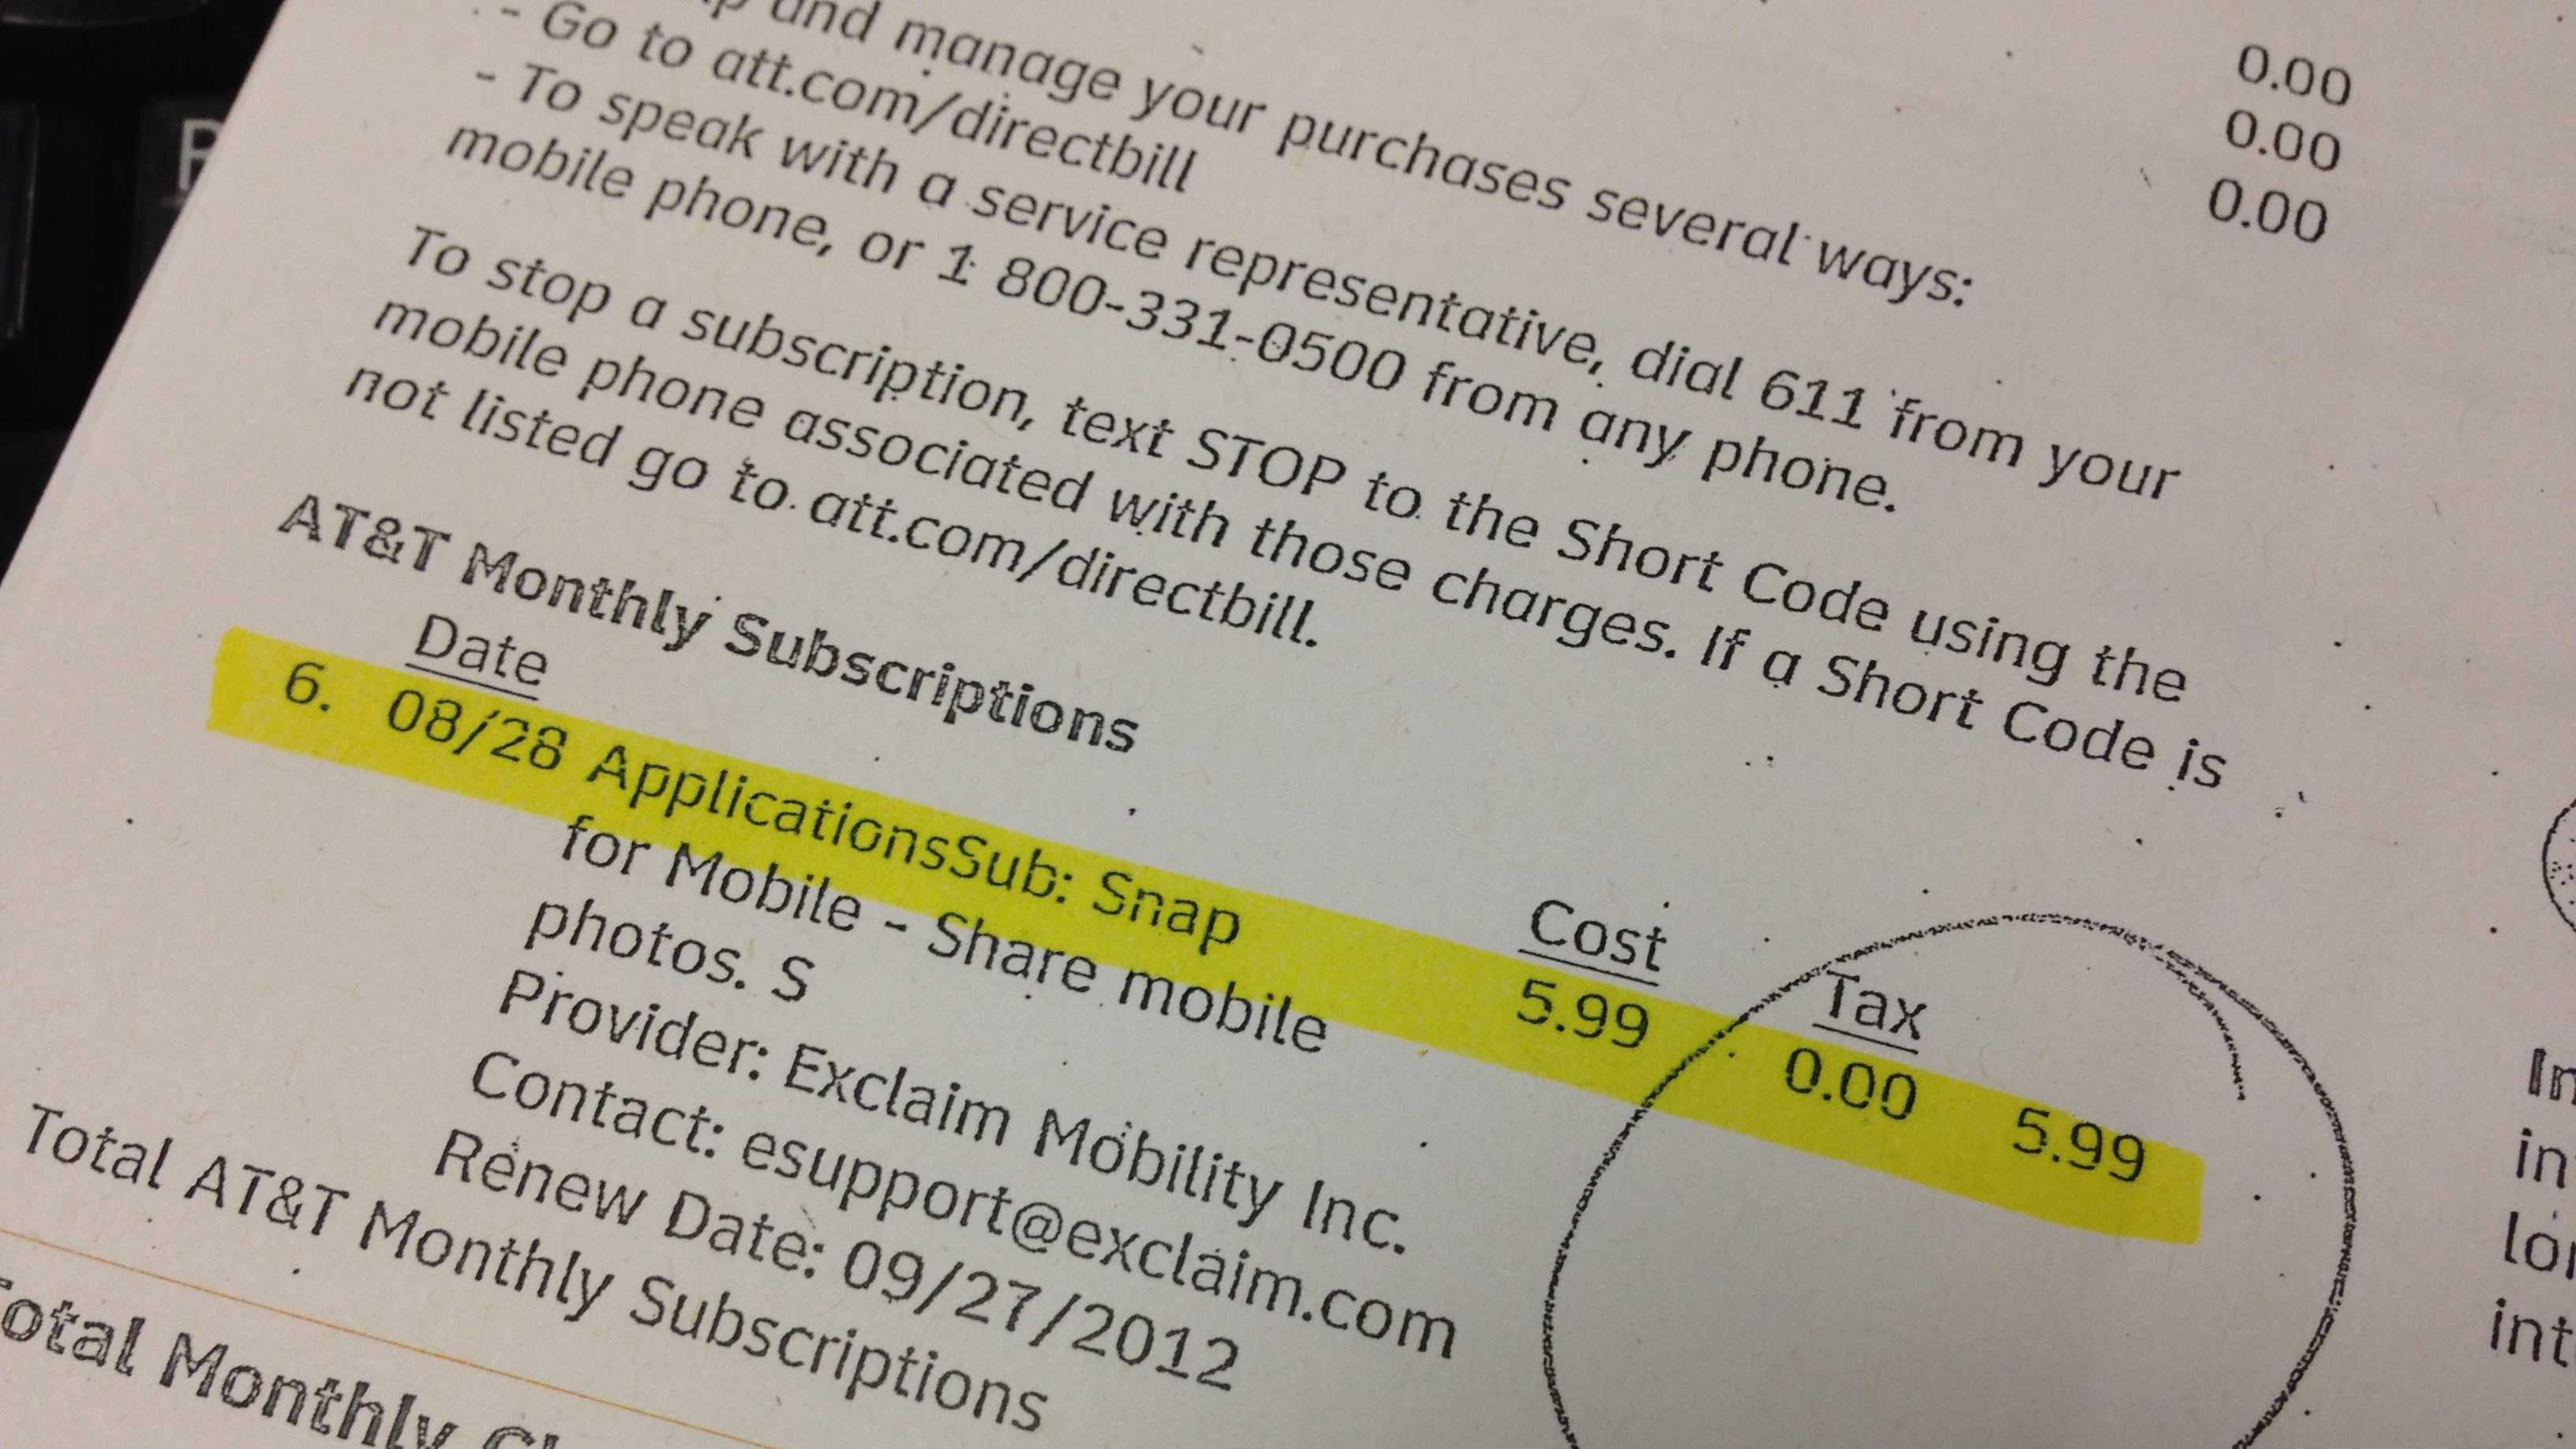 An example of a third-party add-on charge on a wireless phone bill.